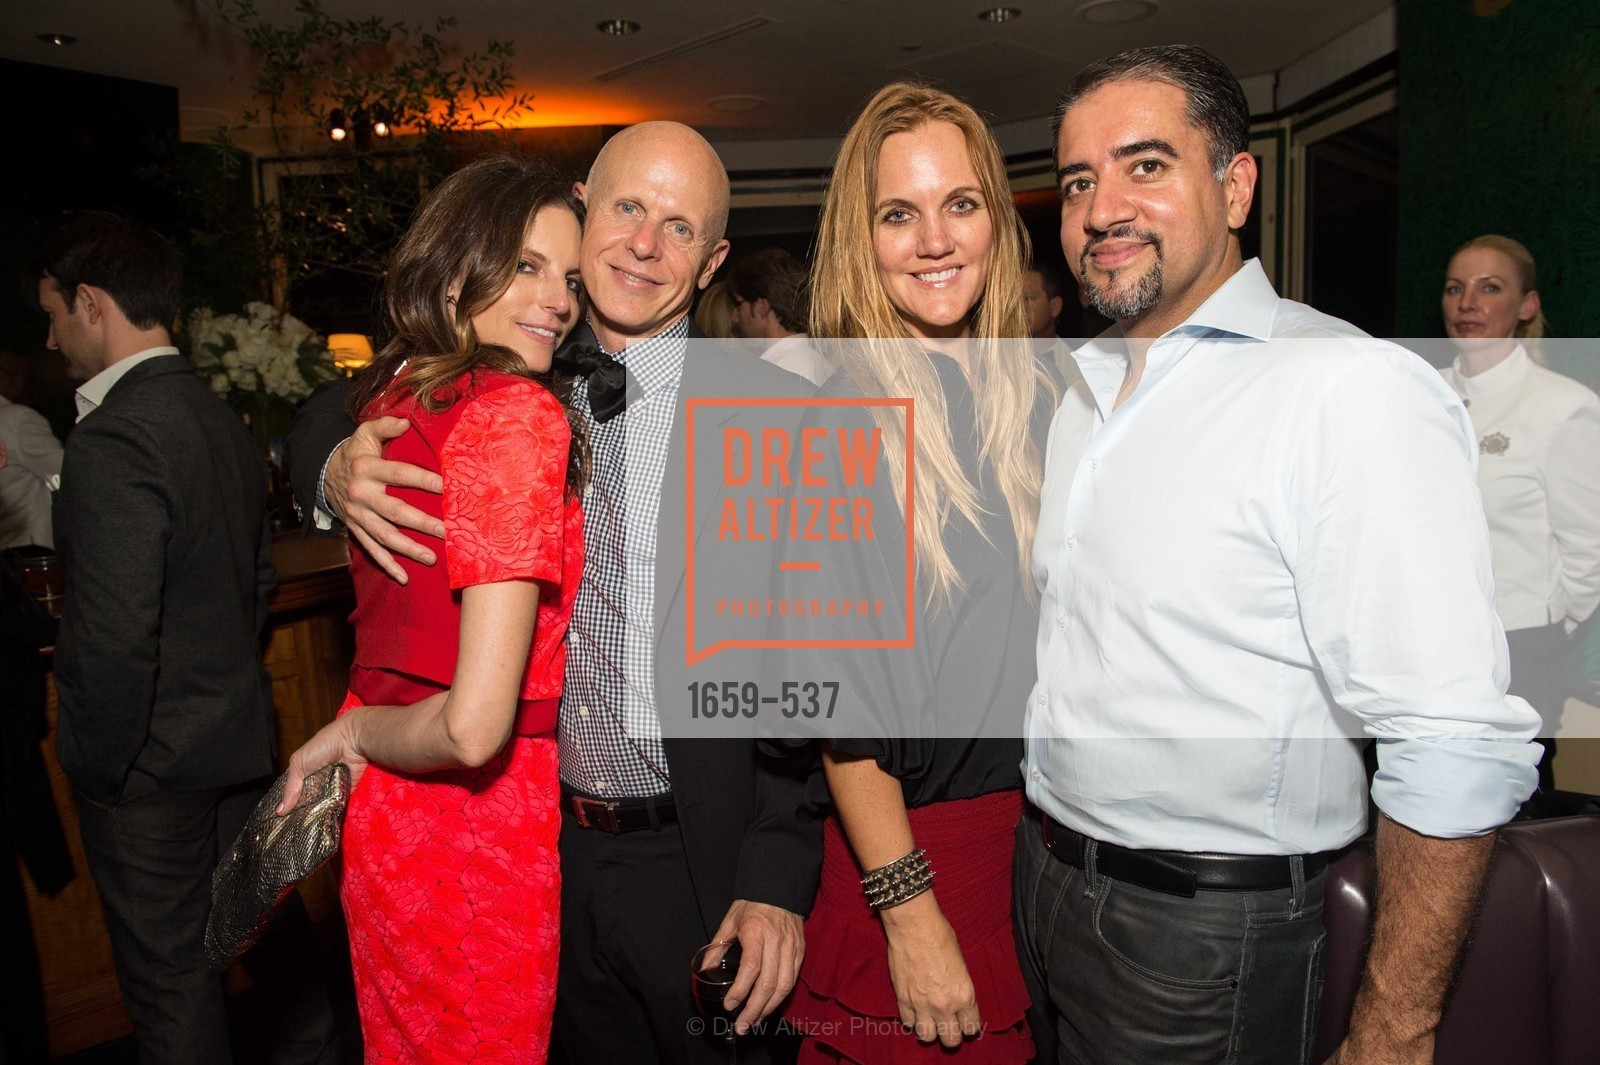 Gabriella Sarlo, Jen Wick, Nadir Shaikh, TOP OF THE MARK'S 75TH Anniversary Party, US, November 7th, 2014,Drew Altizer, Drew Altizer Photography, full-service agency, private events, San Francisco photographer, photographer california